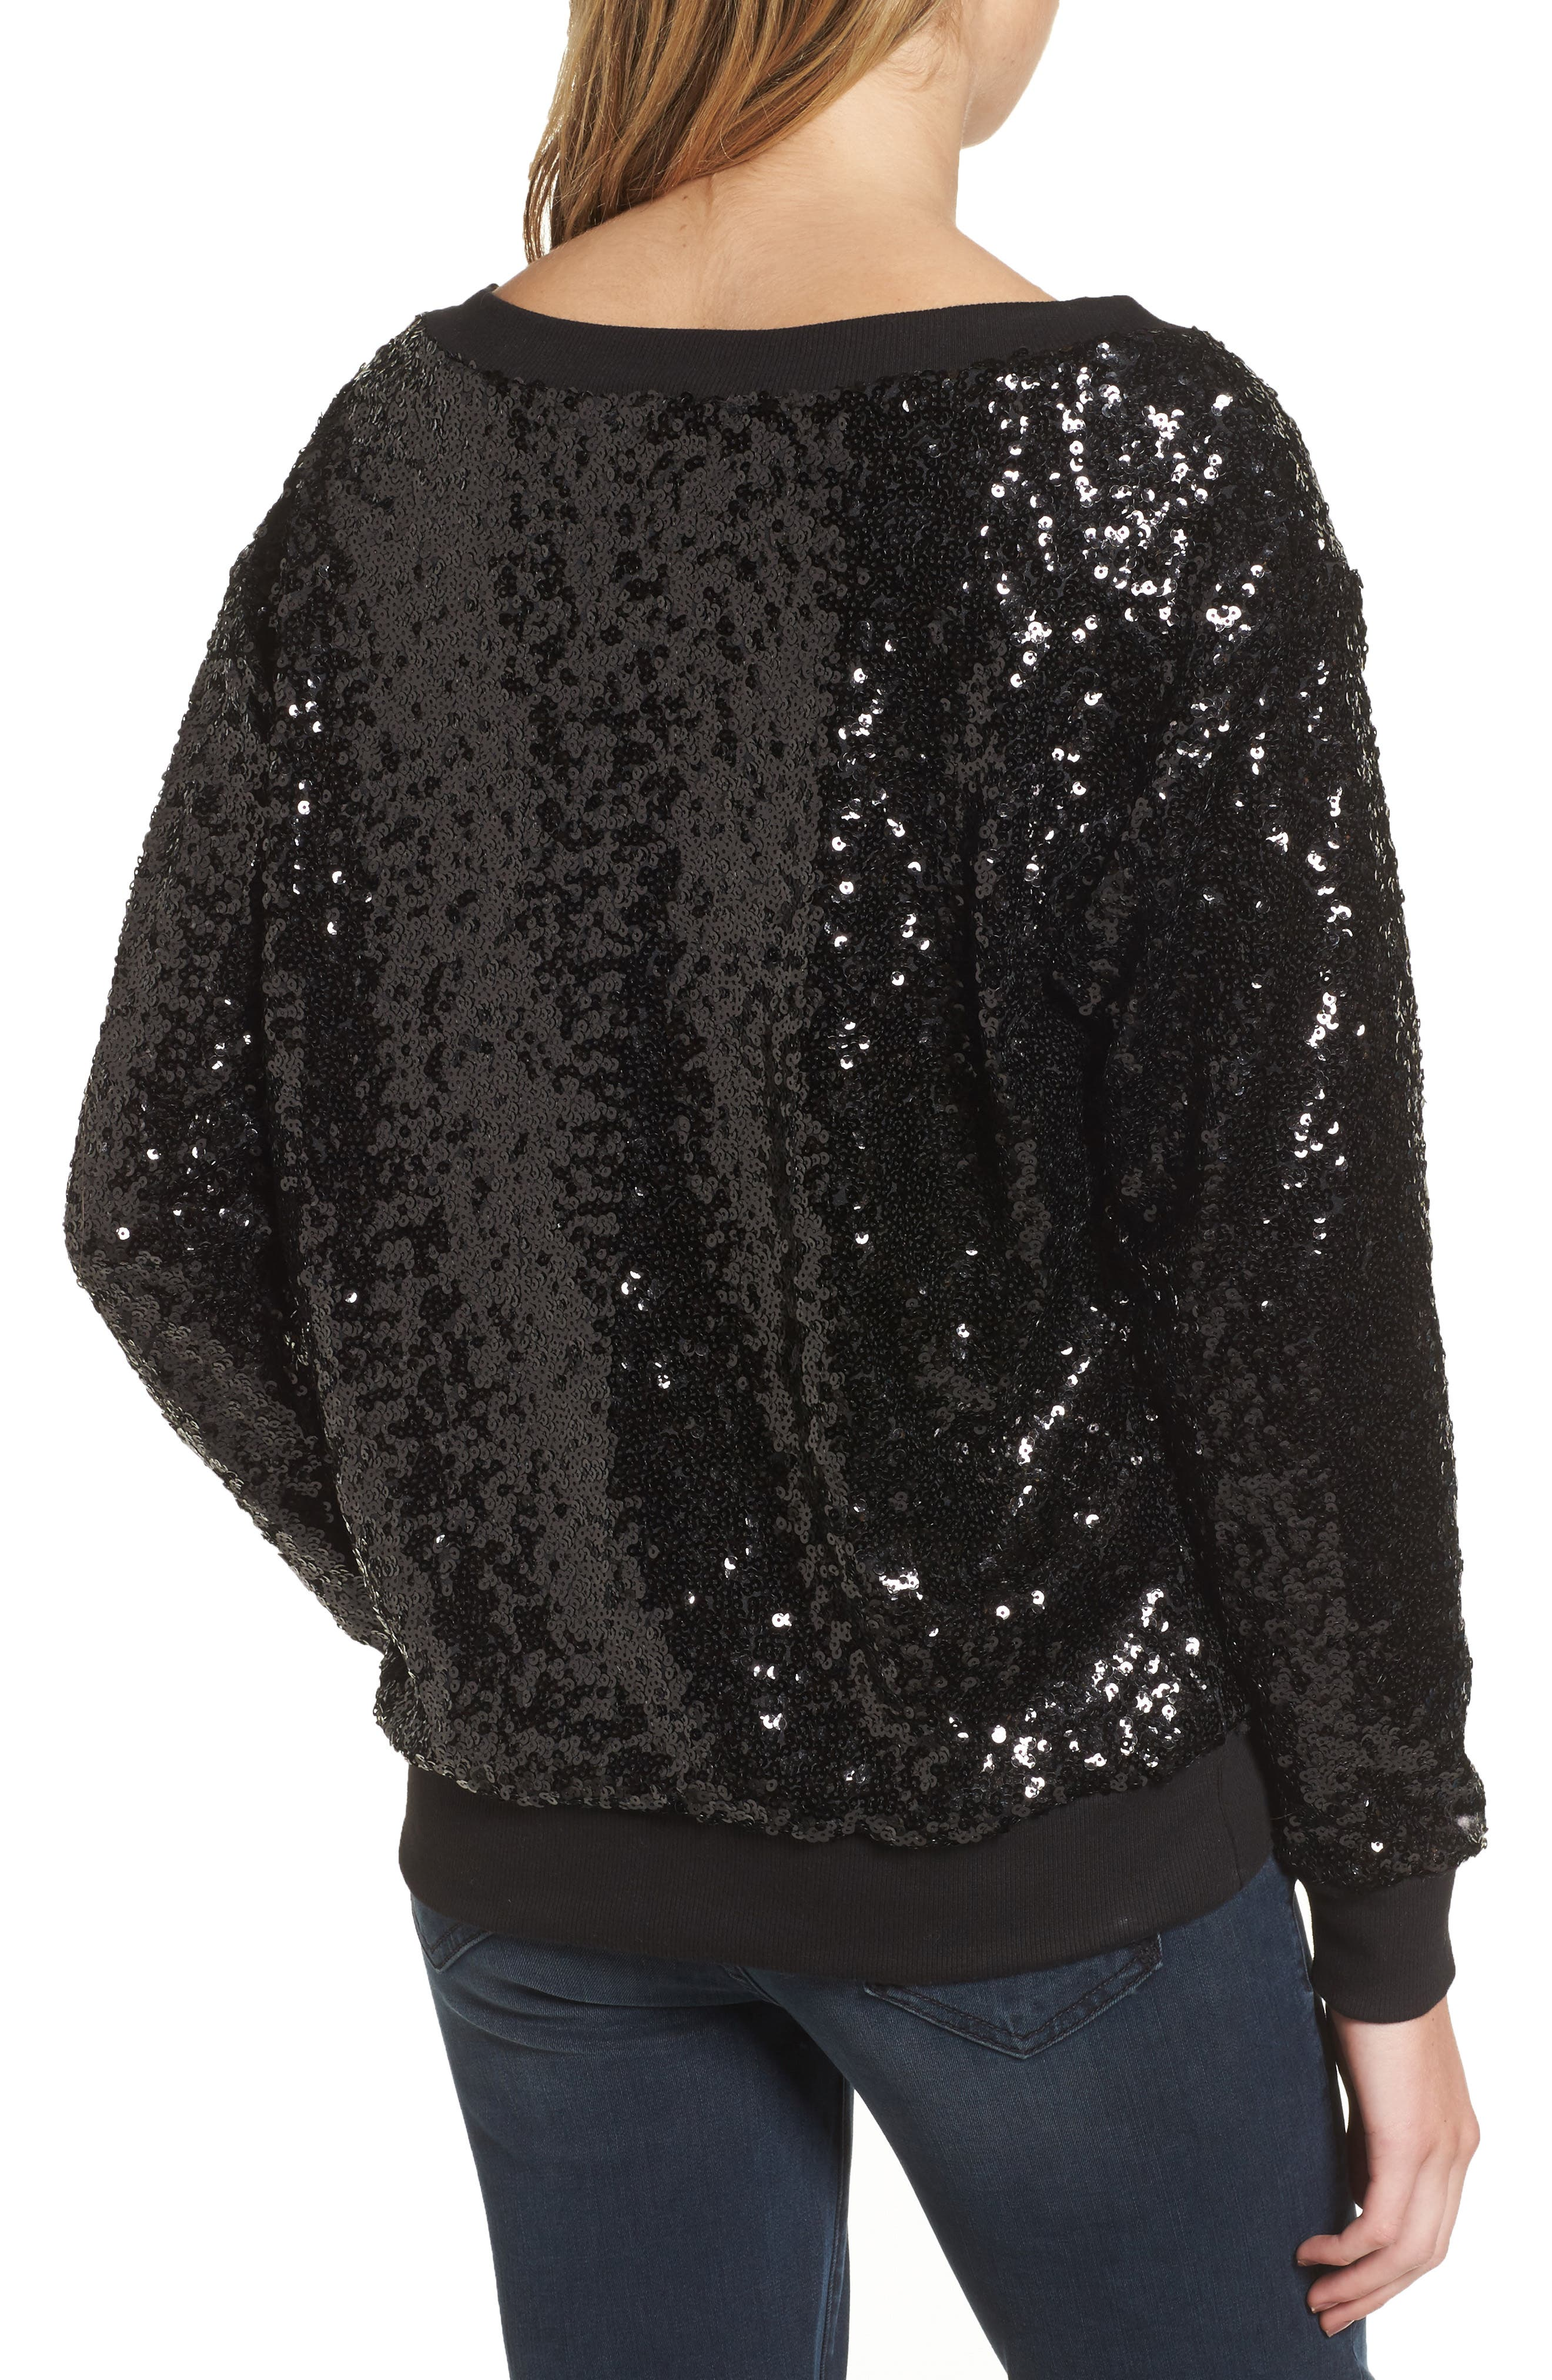 Sequin Sweatshirt,                             Alternate thumbnail 2, color,                             Black